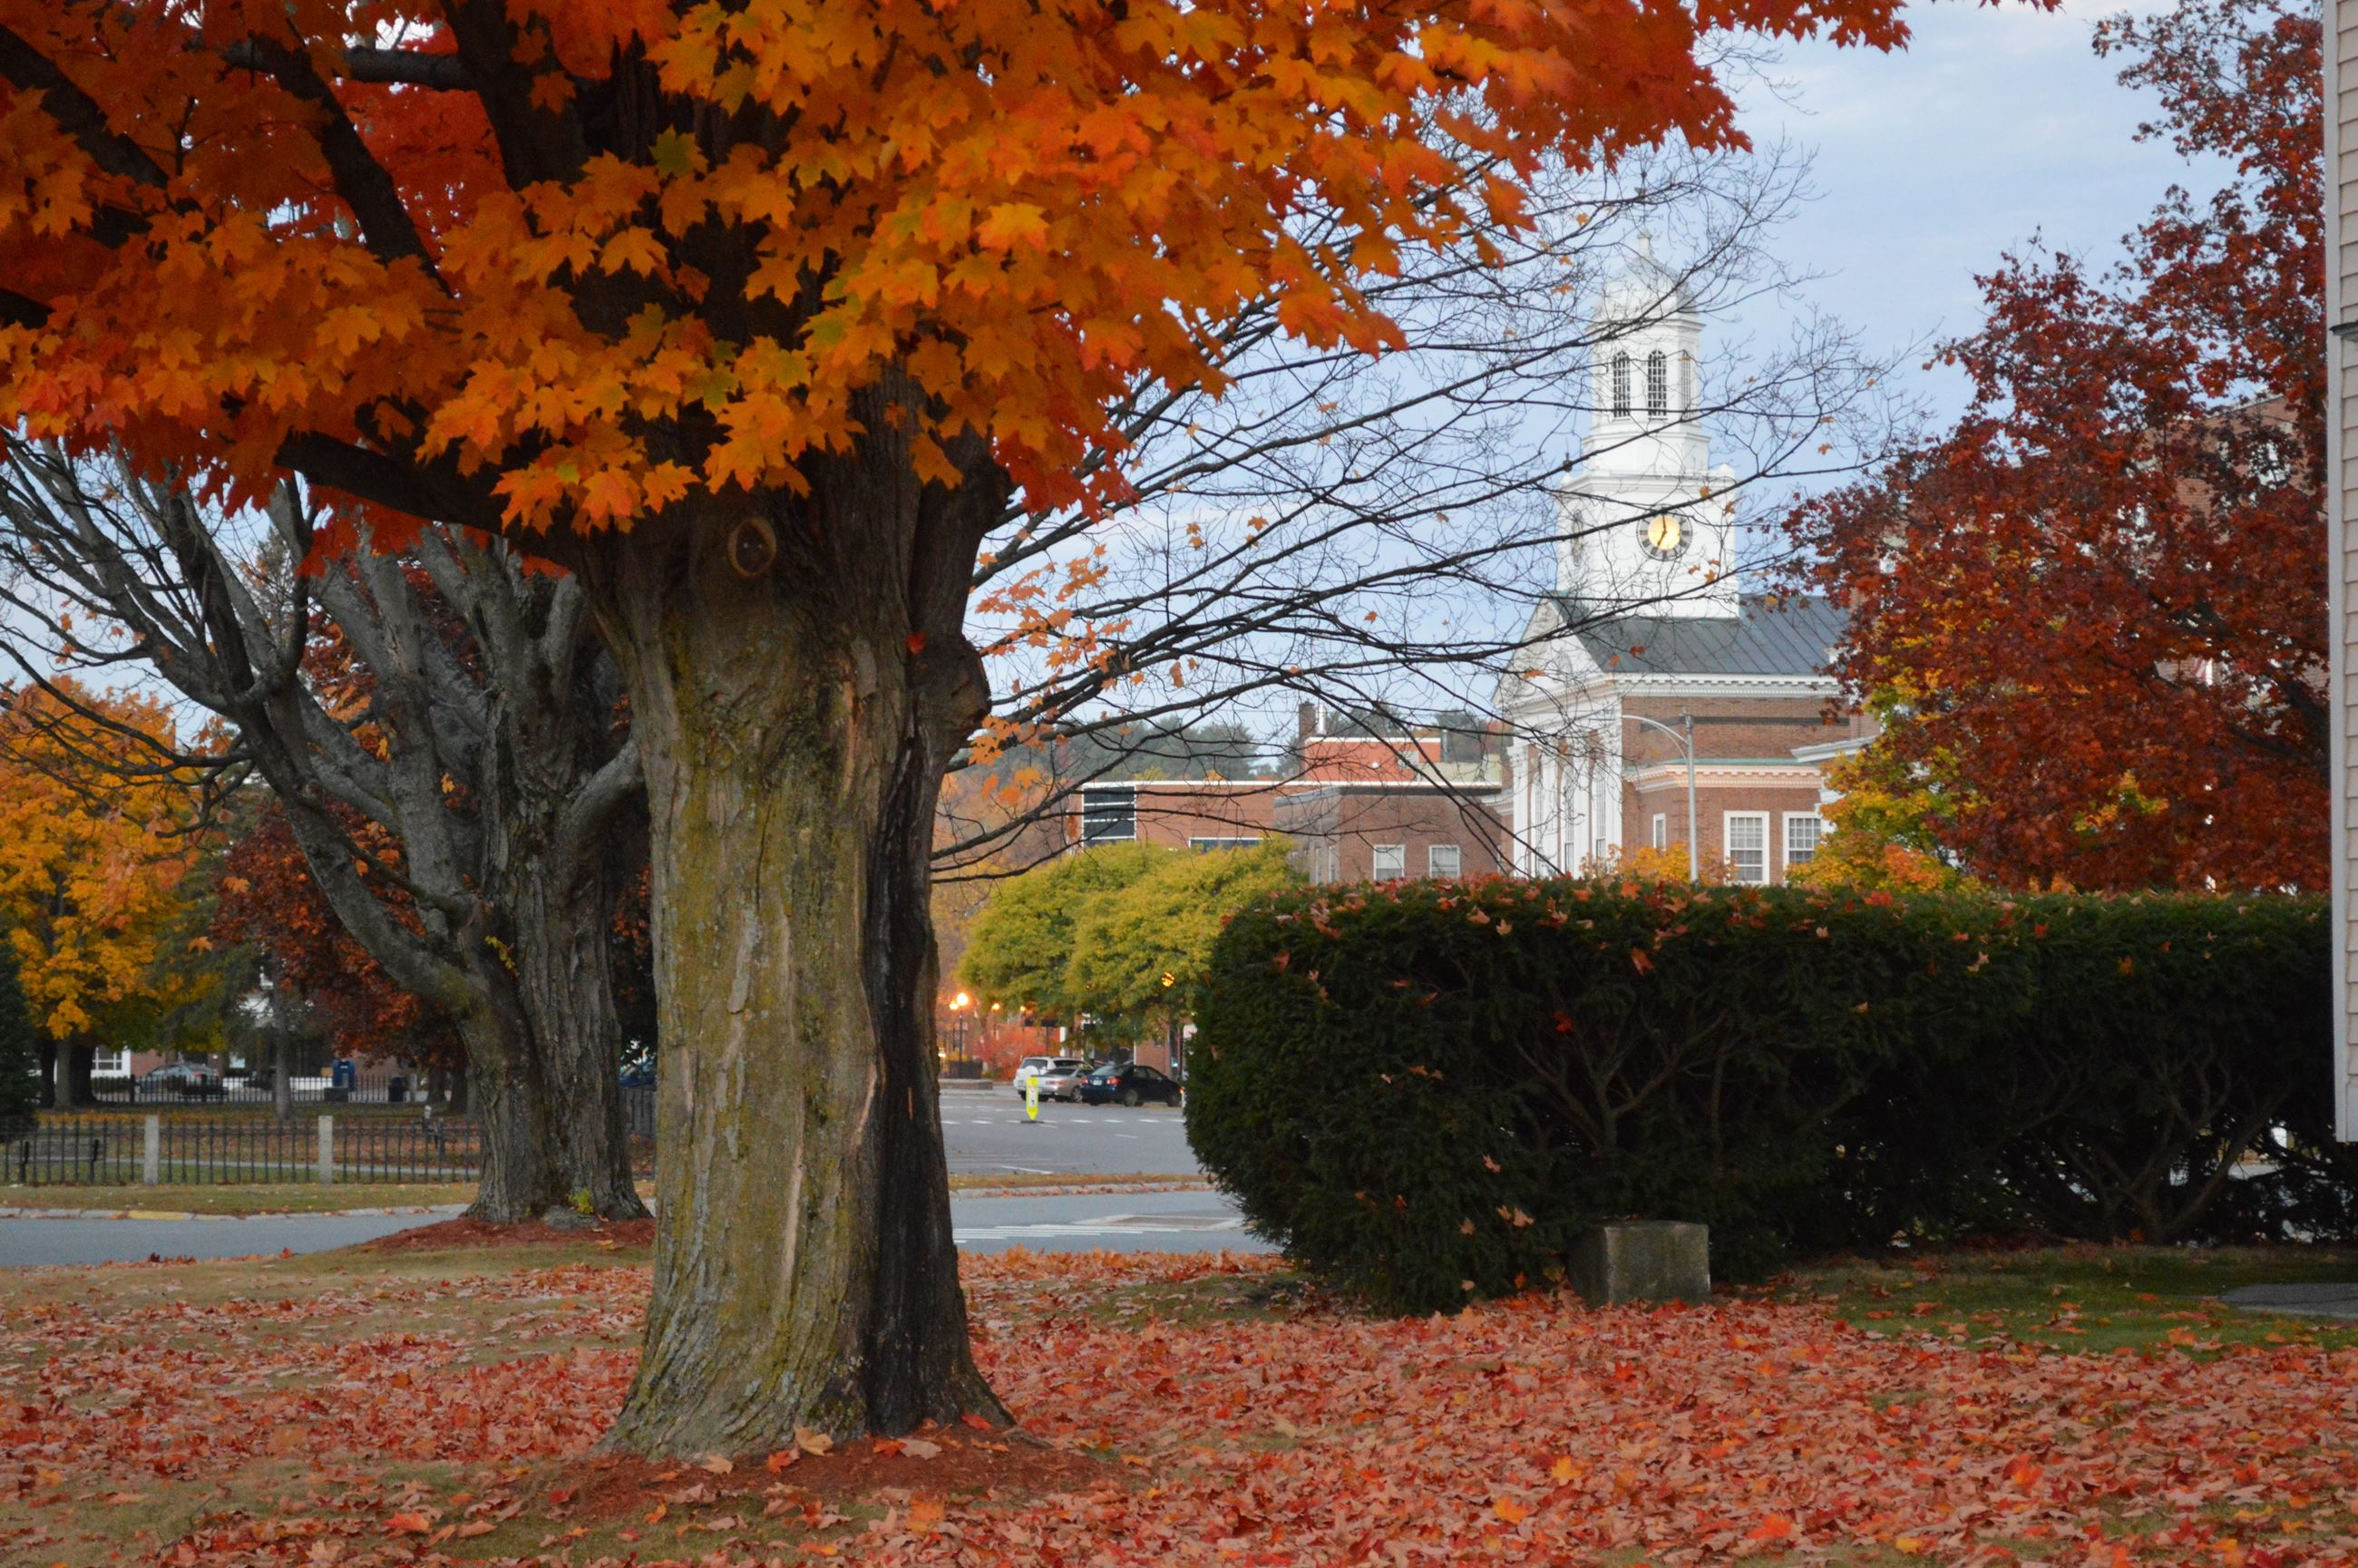 Lebanon Fall photo. City Hall from Bank street. Photo submitted by Deborah Baker.